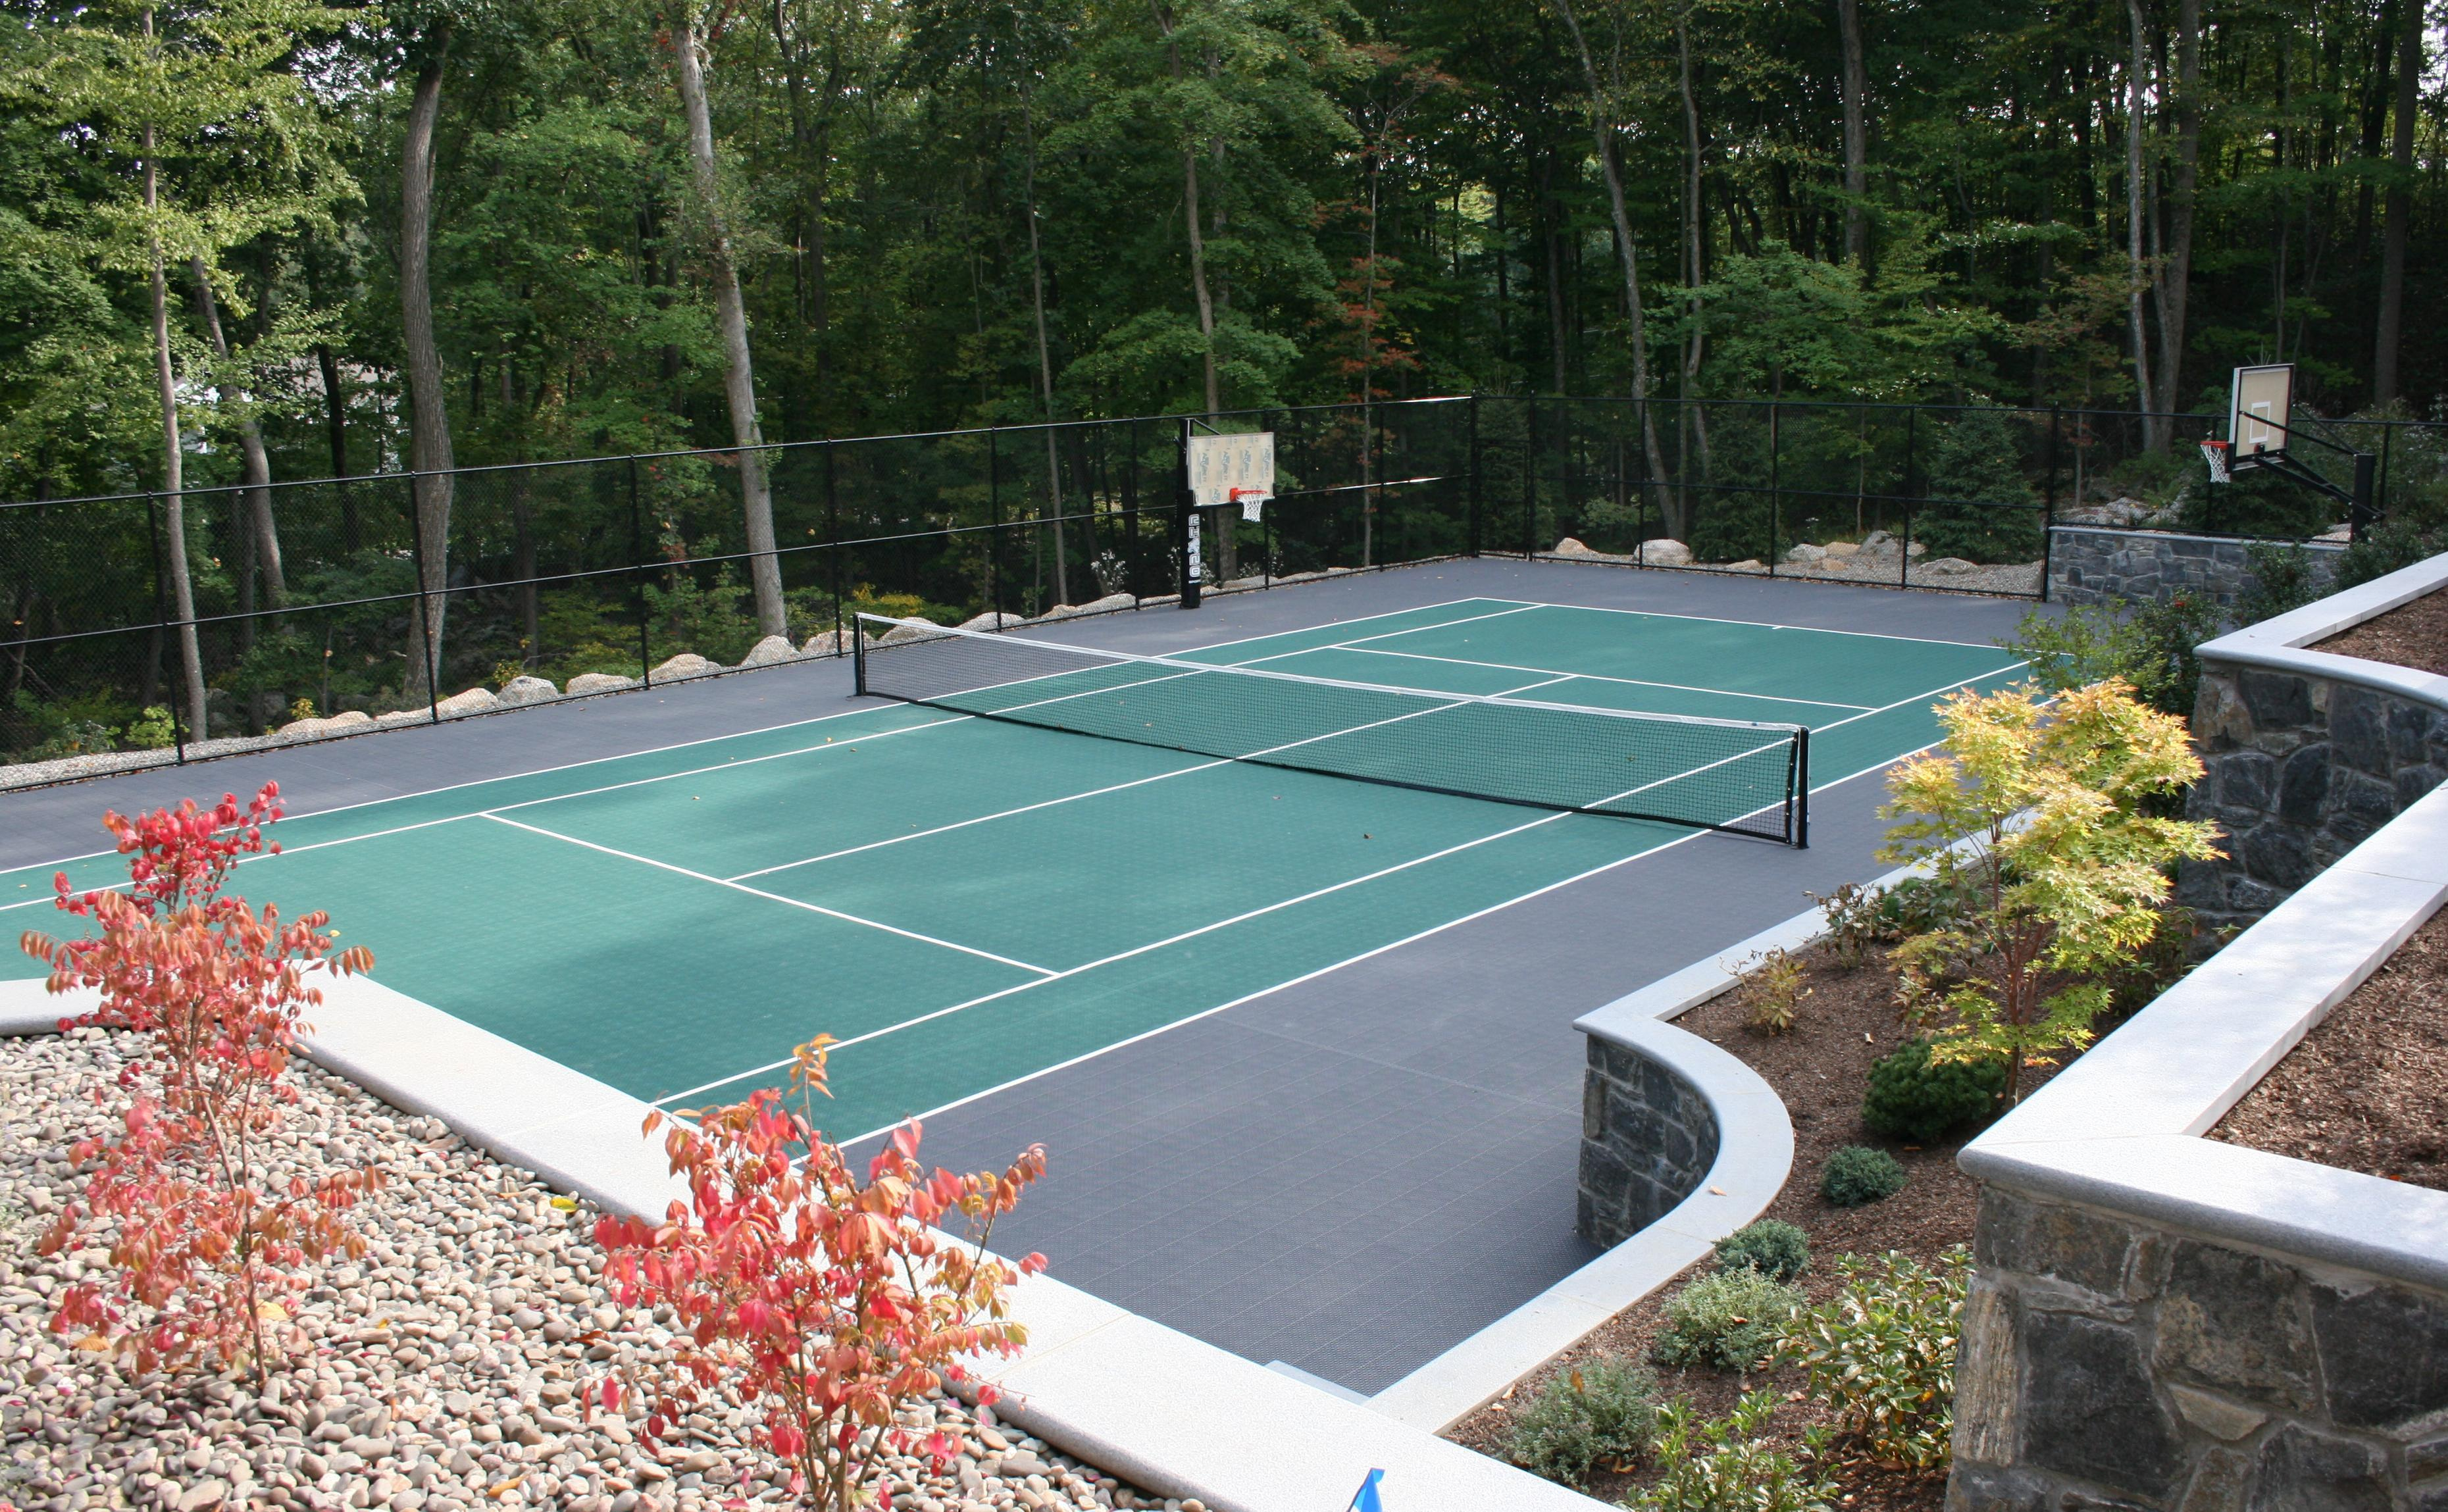 Backyard Tennis Court the advantages of a backyard court | long island tennis magazine